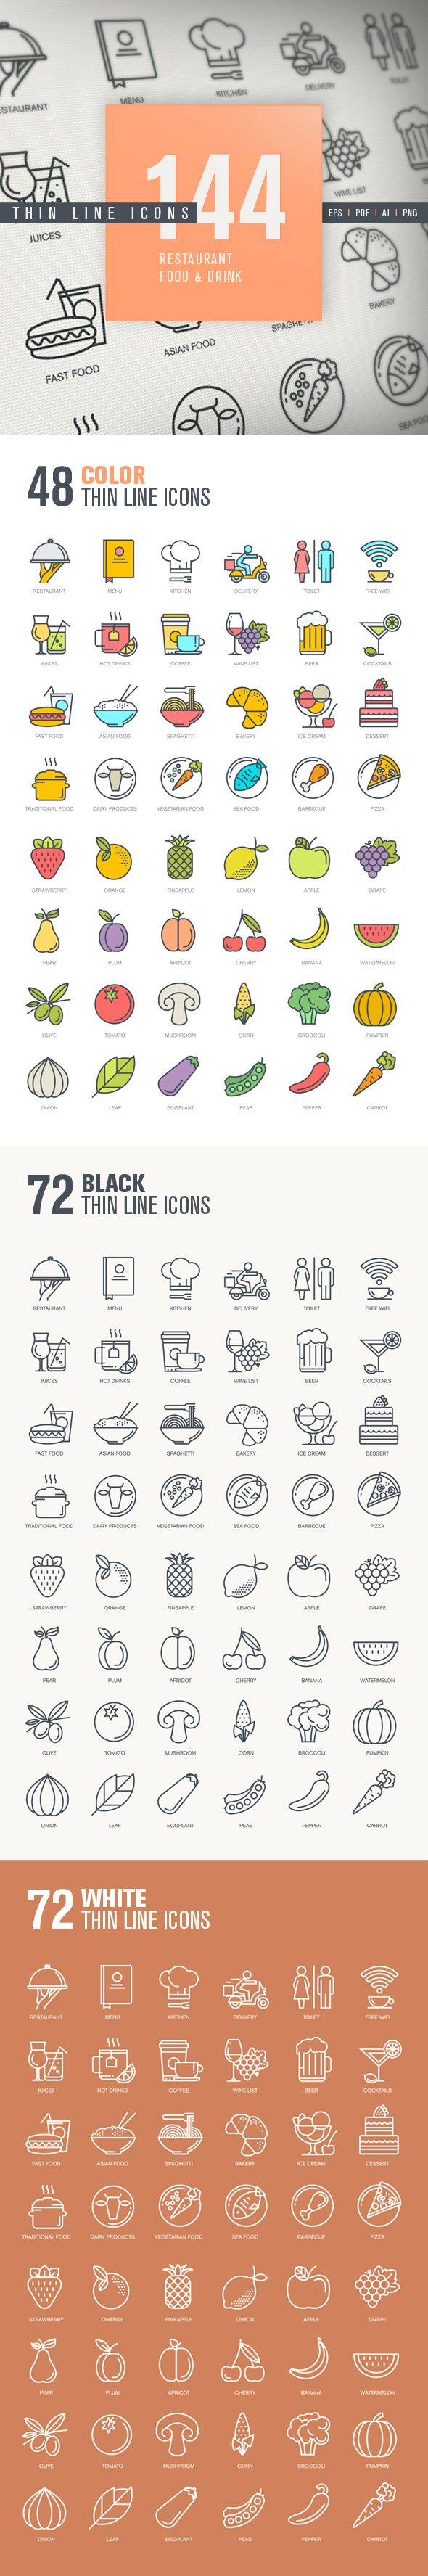 Thin Line Icons for Restaurant, Food & Drink on Behance